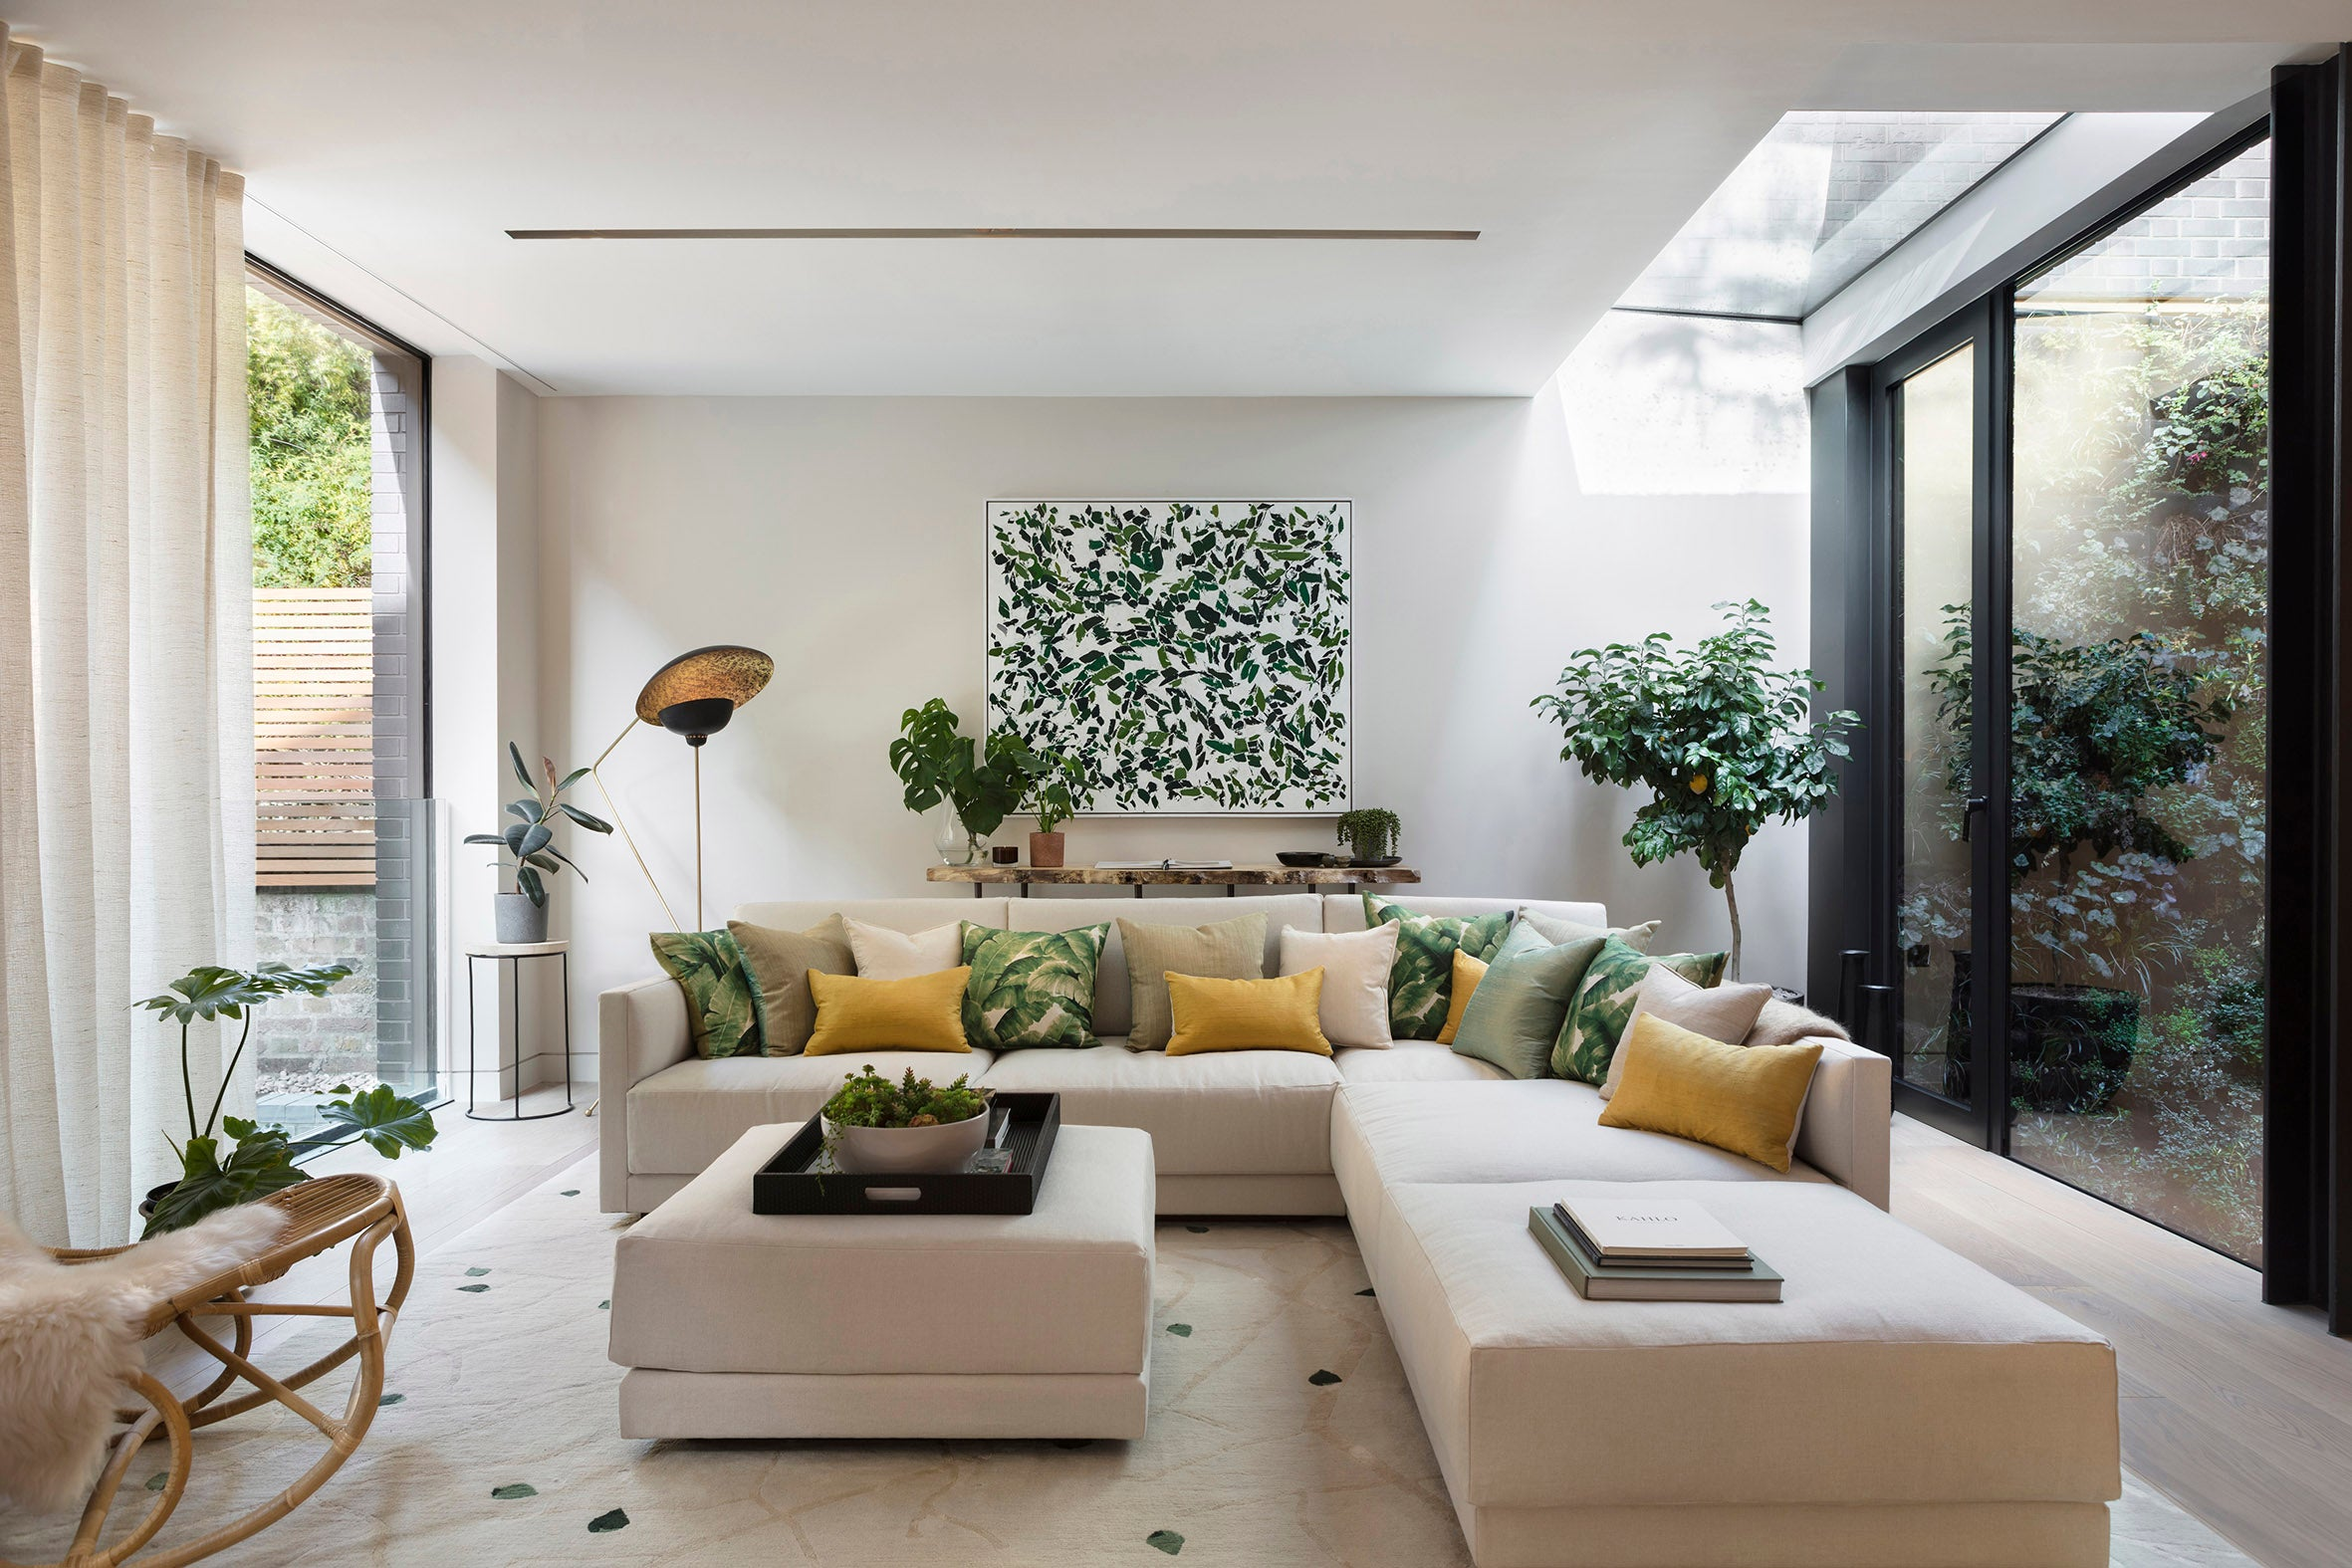 Echlin Studio Leverton House Luxury Residence Living Area and Light Well